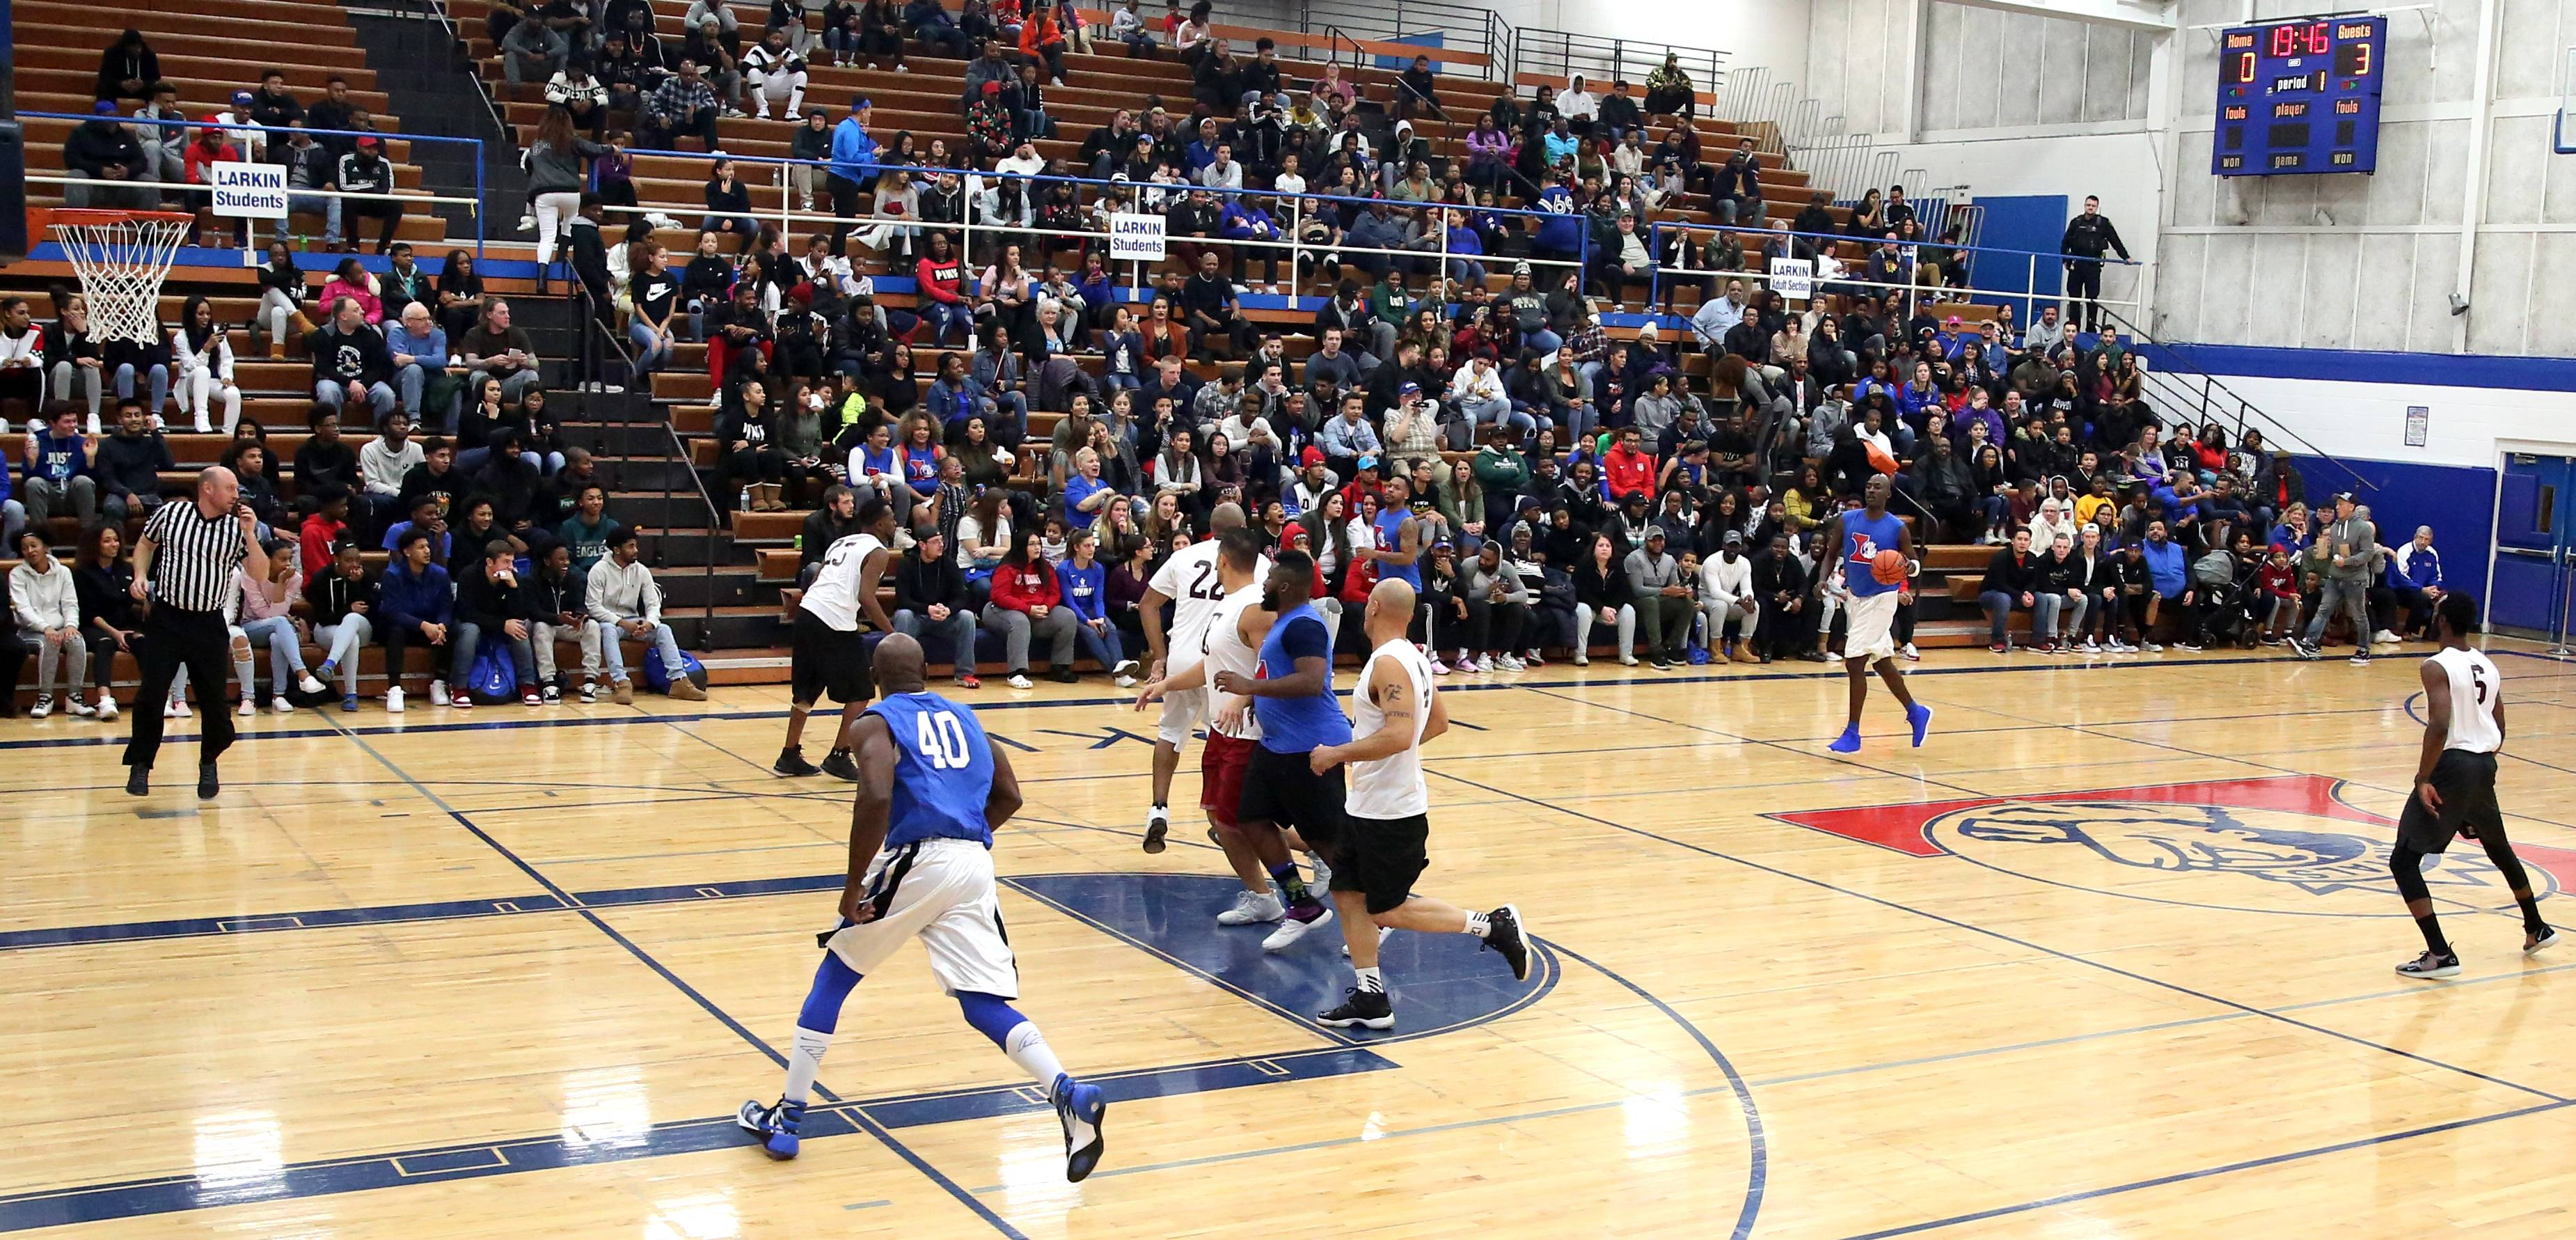 A large crowd was on hand to take in the Larkin vs. Elgin Part 2 alumni games at Larkin High School in Elgin Wednesday night.